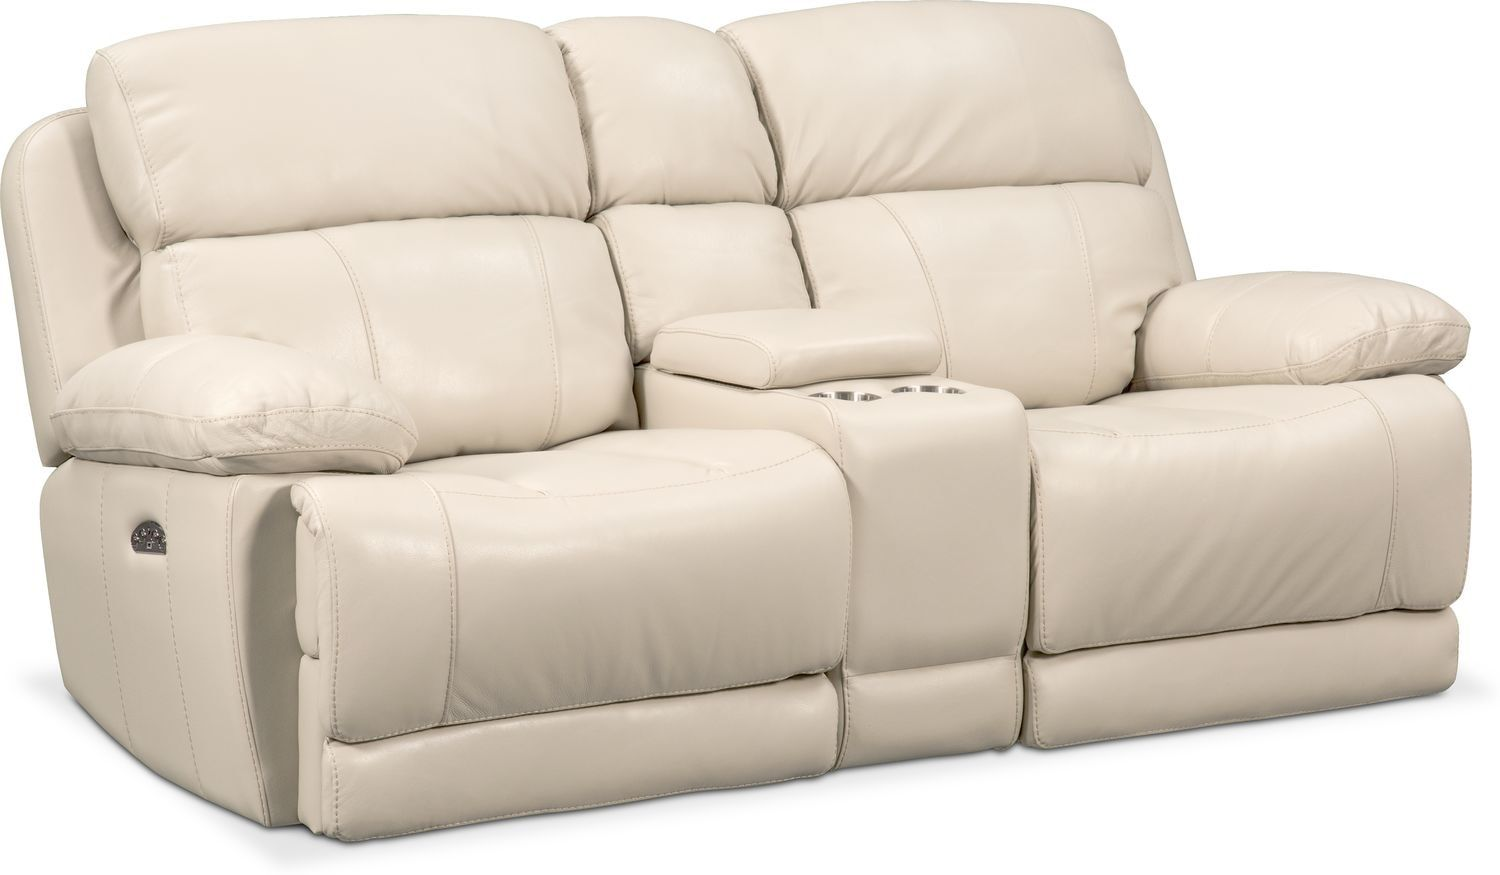 Pin By Becky Oliver On Muebles In 2020 Power Reclining Loveseat Power Recliners Reclining Sofa